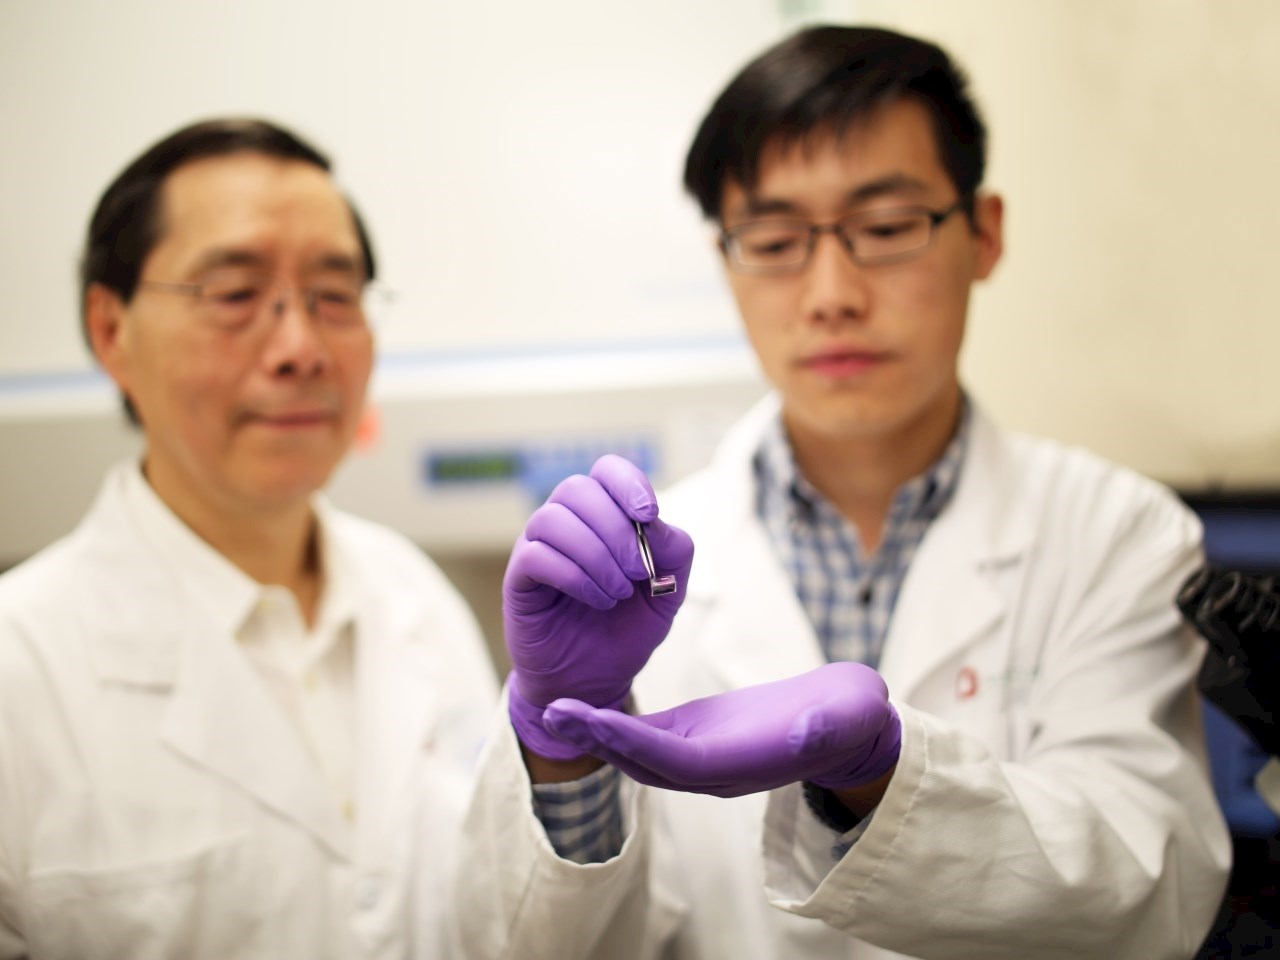 James Lee, PhD, left, examines a silicon chip with Junfeng Shi